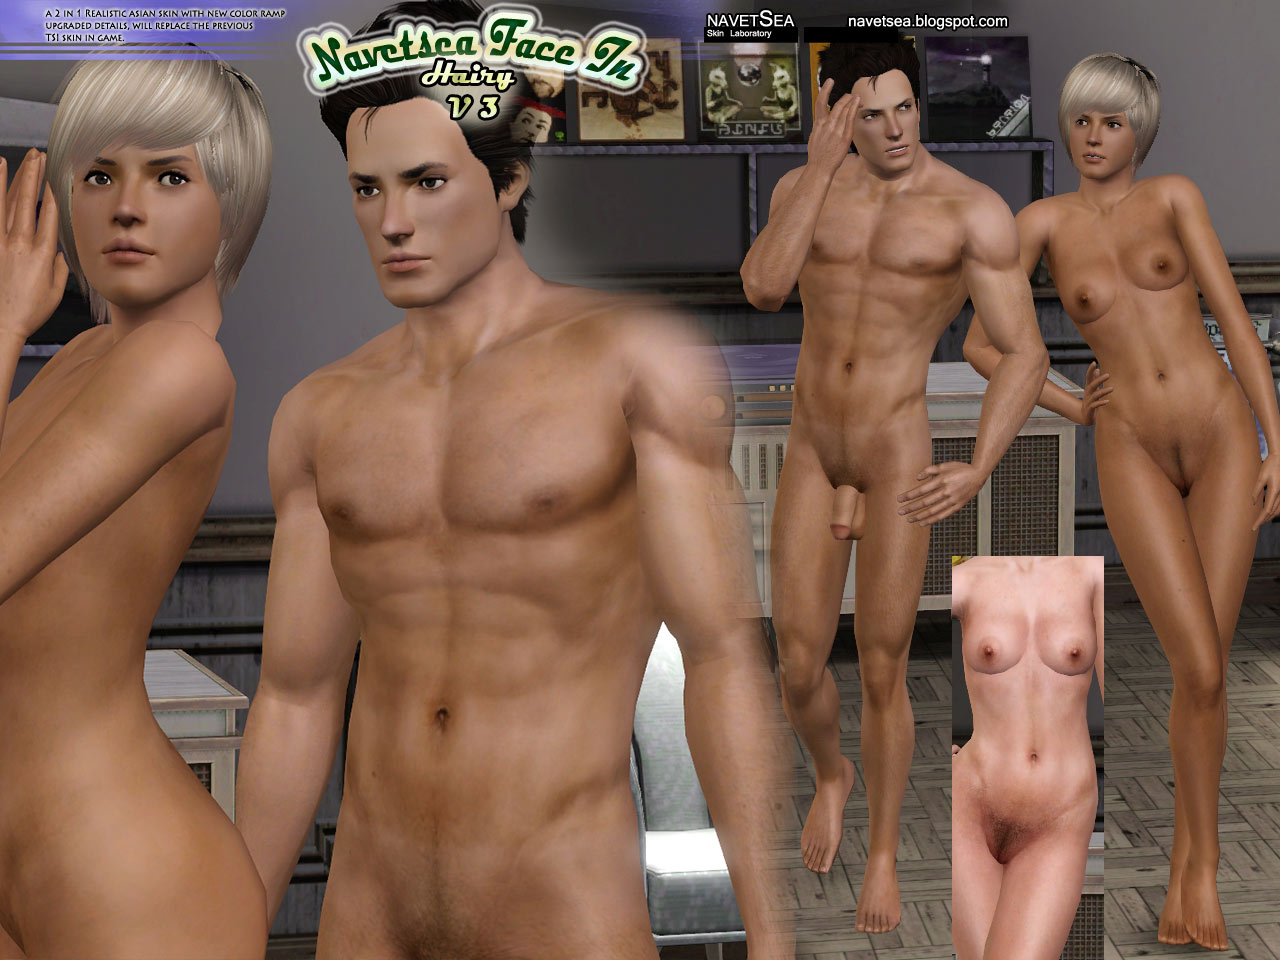 Super nude mod the sims hardcore pic